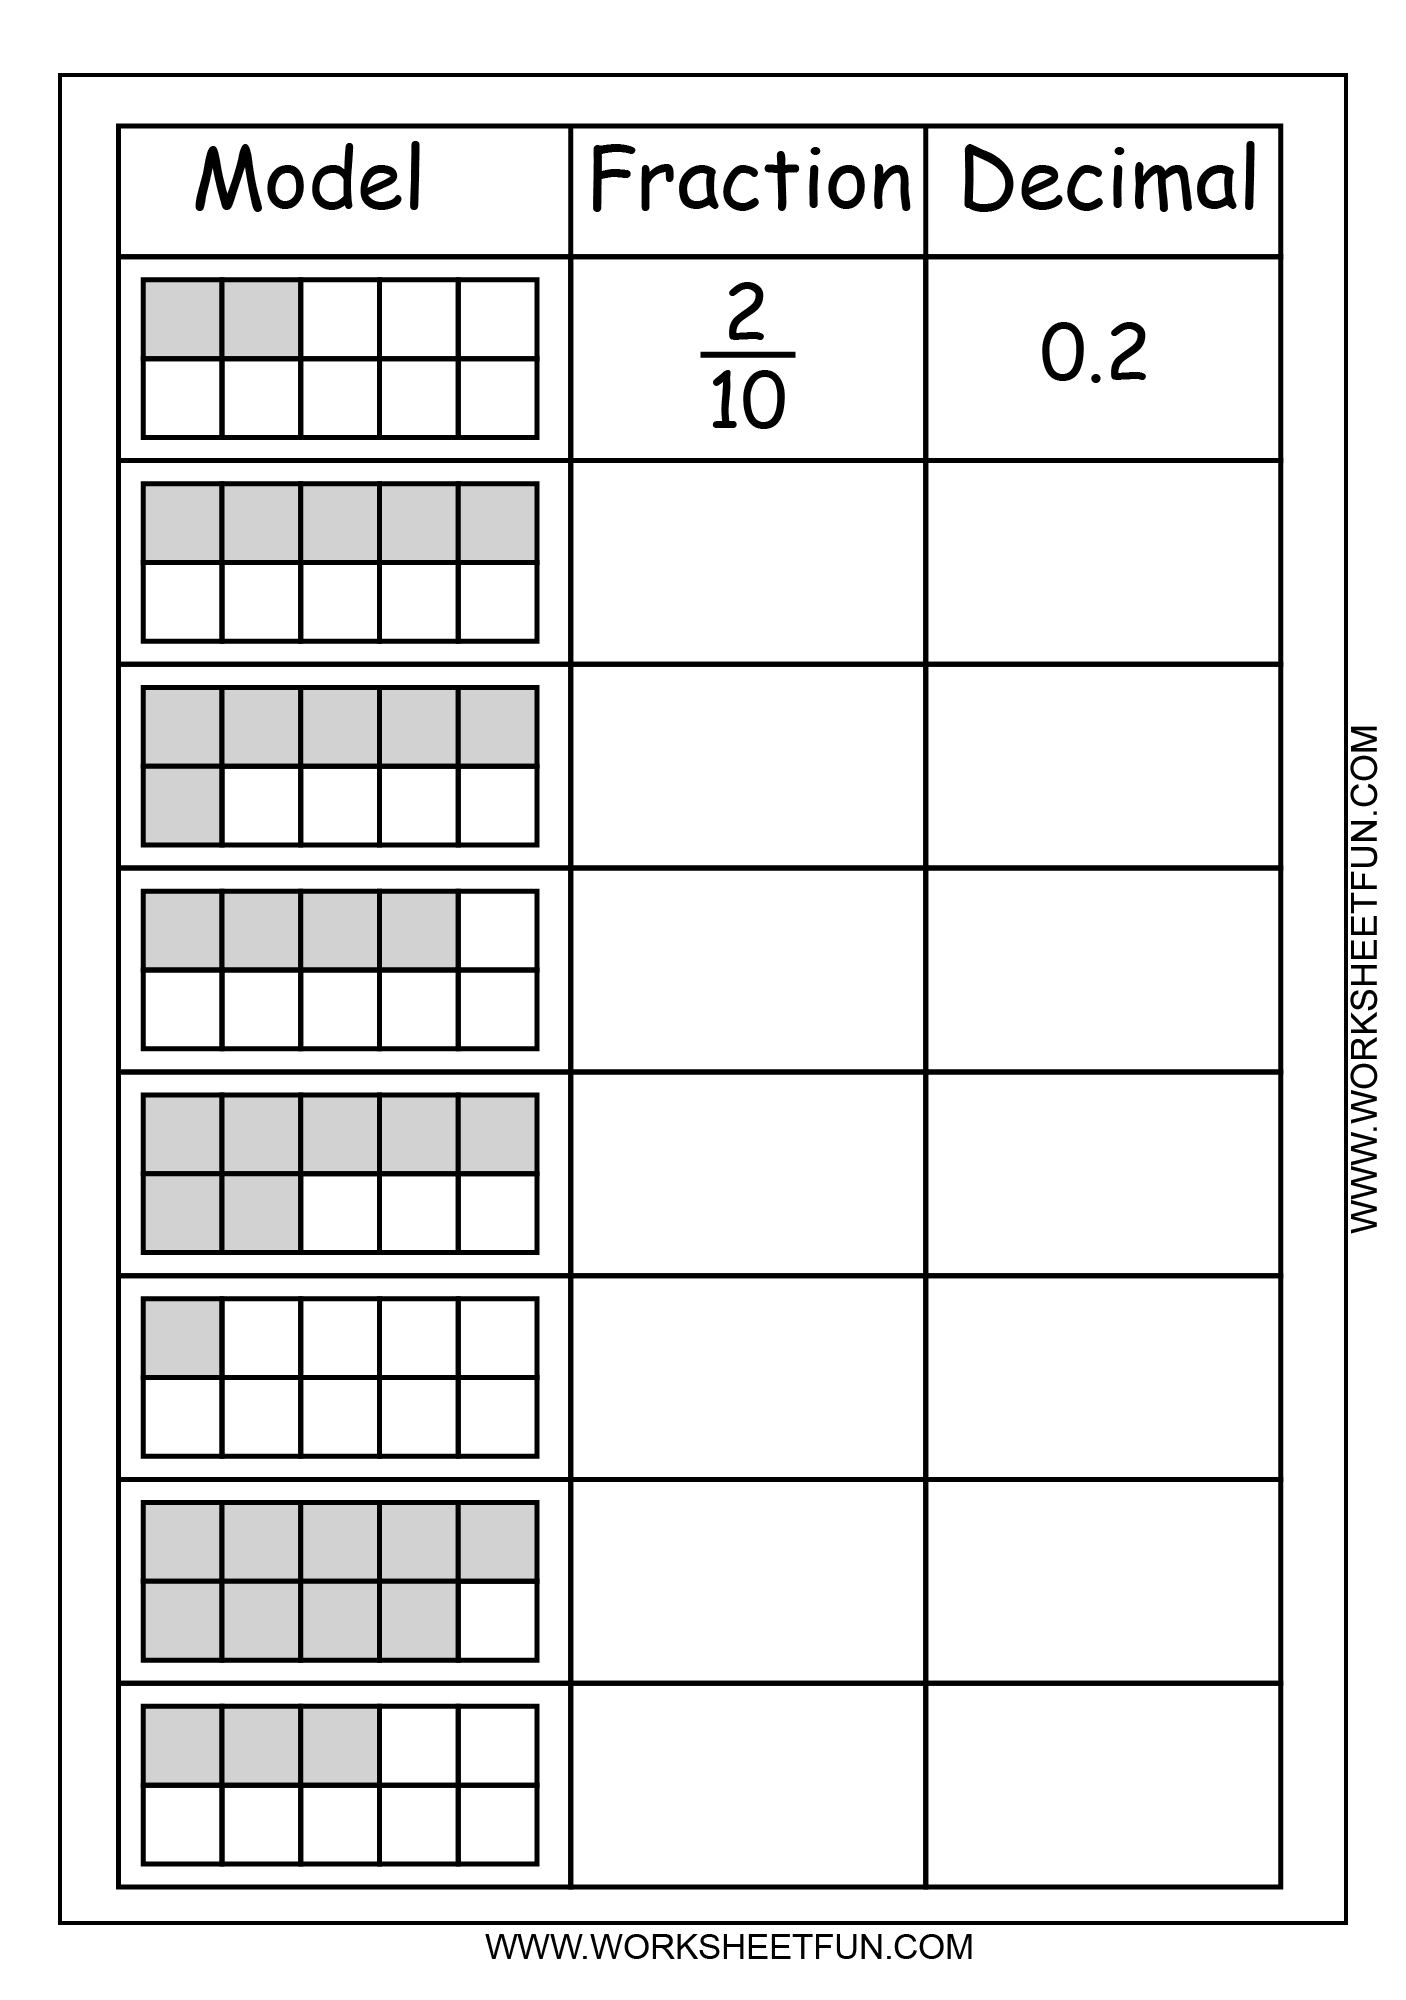 math worksheet : adult top fractions to decimals worksheet inspirations myltio  : Change Fractions To Decimals Worksheet